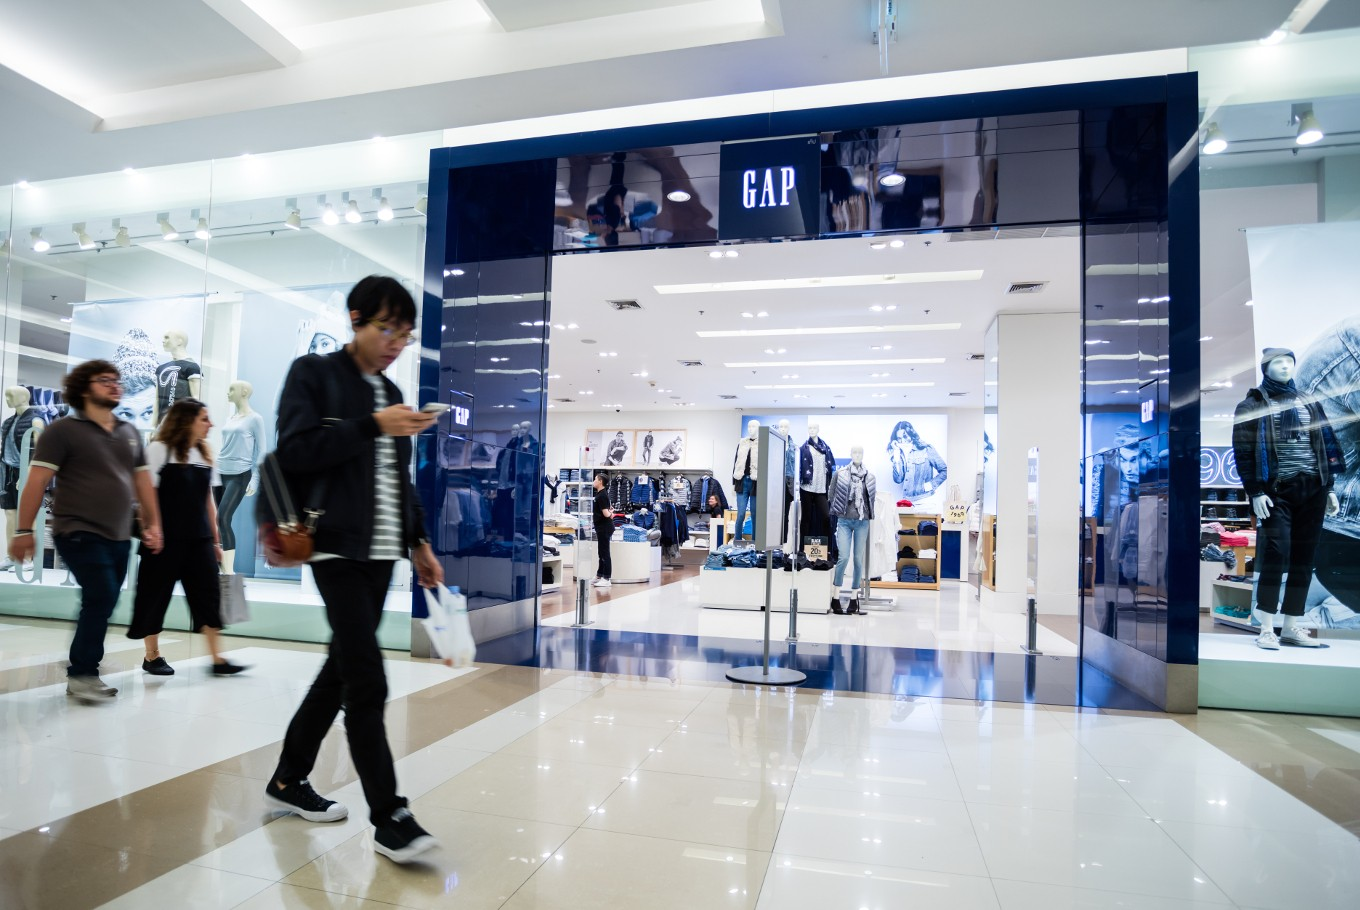 What Do Gaps Store Closing Announcements Say about its